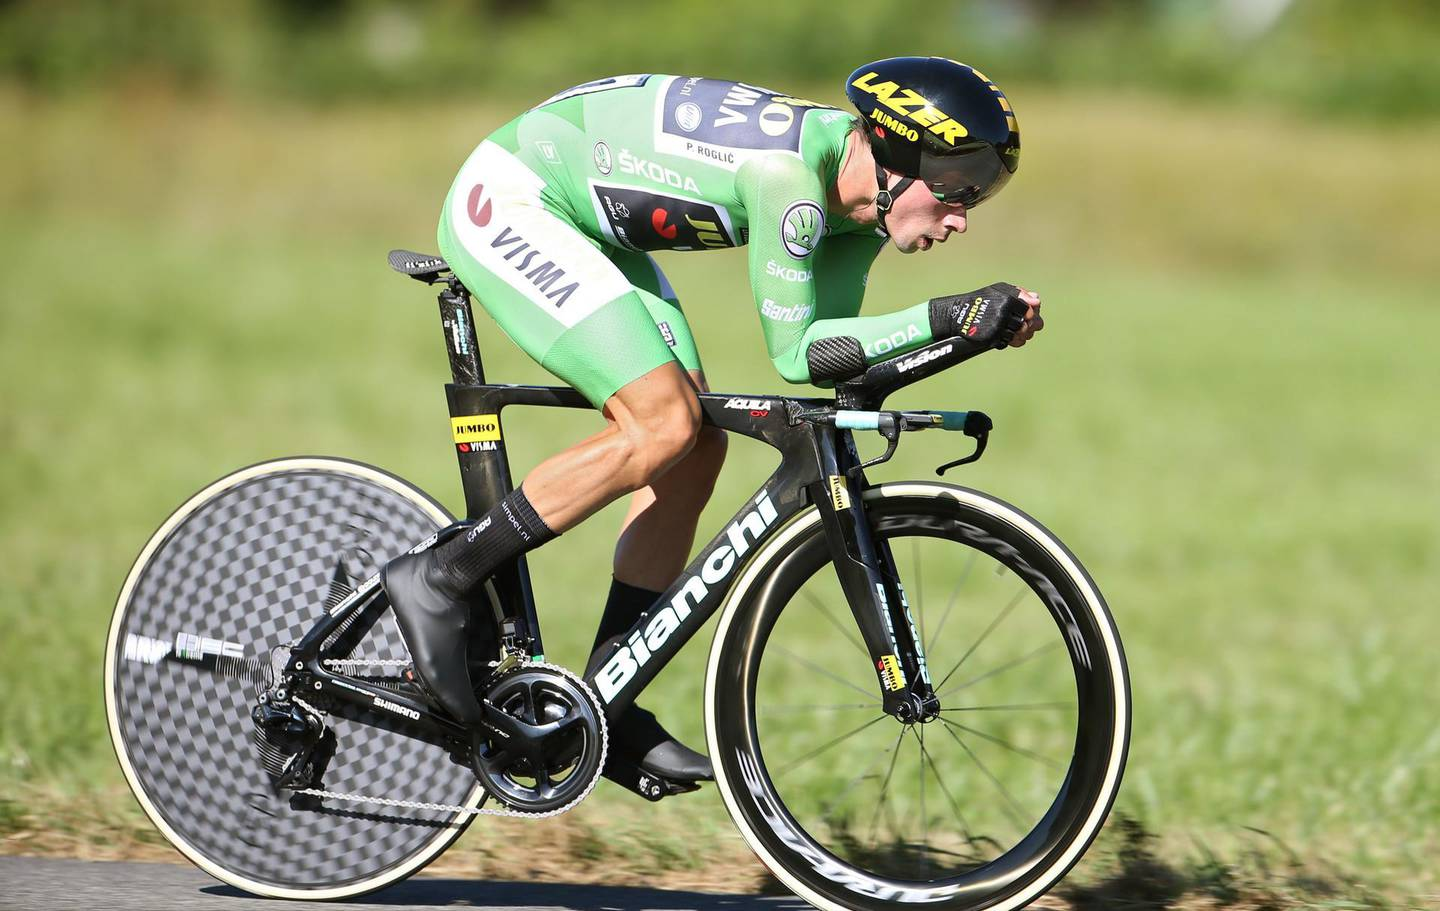 epa07815065 Slovenian rider Primoz Roglic of Jumbo-Visma team in action during the 10th stage of the Vuelta a Espana cycling tour, an individual time trial over 36.2km between Juracon and Pau, France, 03 September 2019.  EPA/JAVIER LIZON